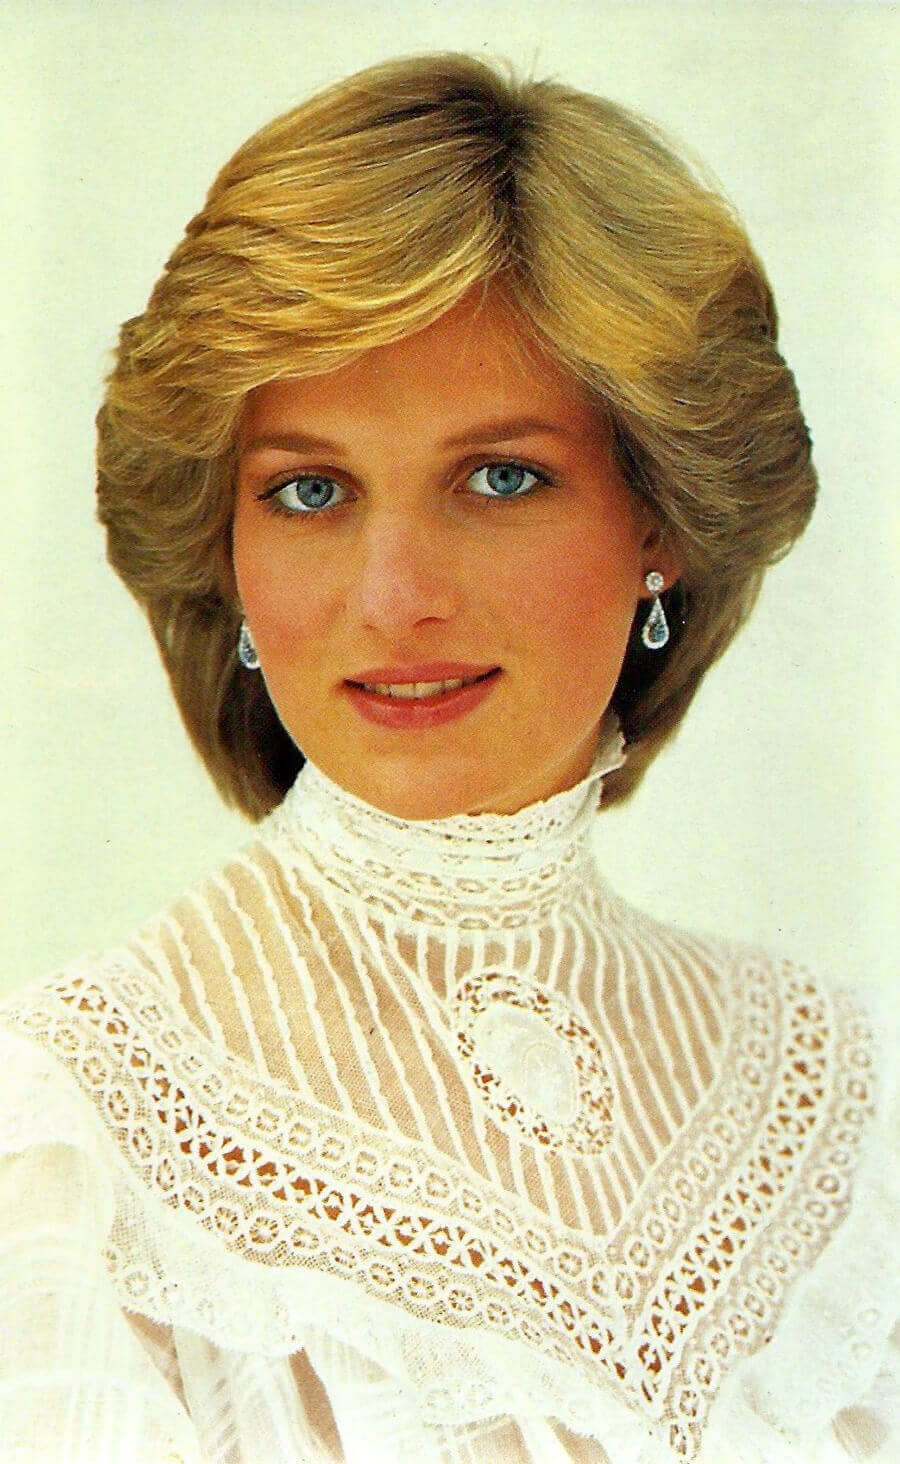 Princess Diana, Sovereign Series No. 4, Royal Family 1982, No. 60 Princess Diana. Another 21st Birthday, Portrait By Snowdon, Published By Prescott-Pickup & Co. Ltd., Made In England